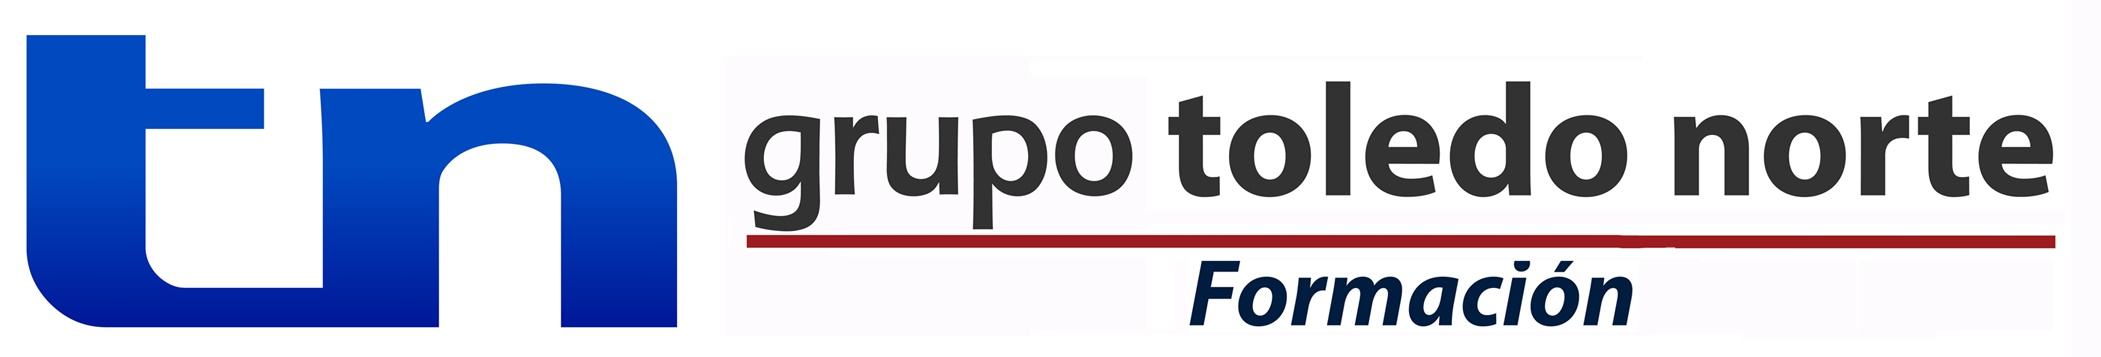 logotipo grupo toledo norte alta resolución_2